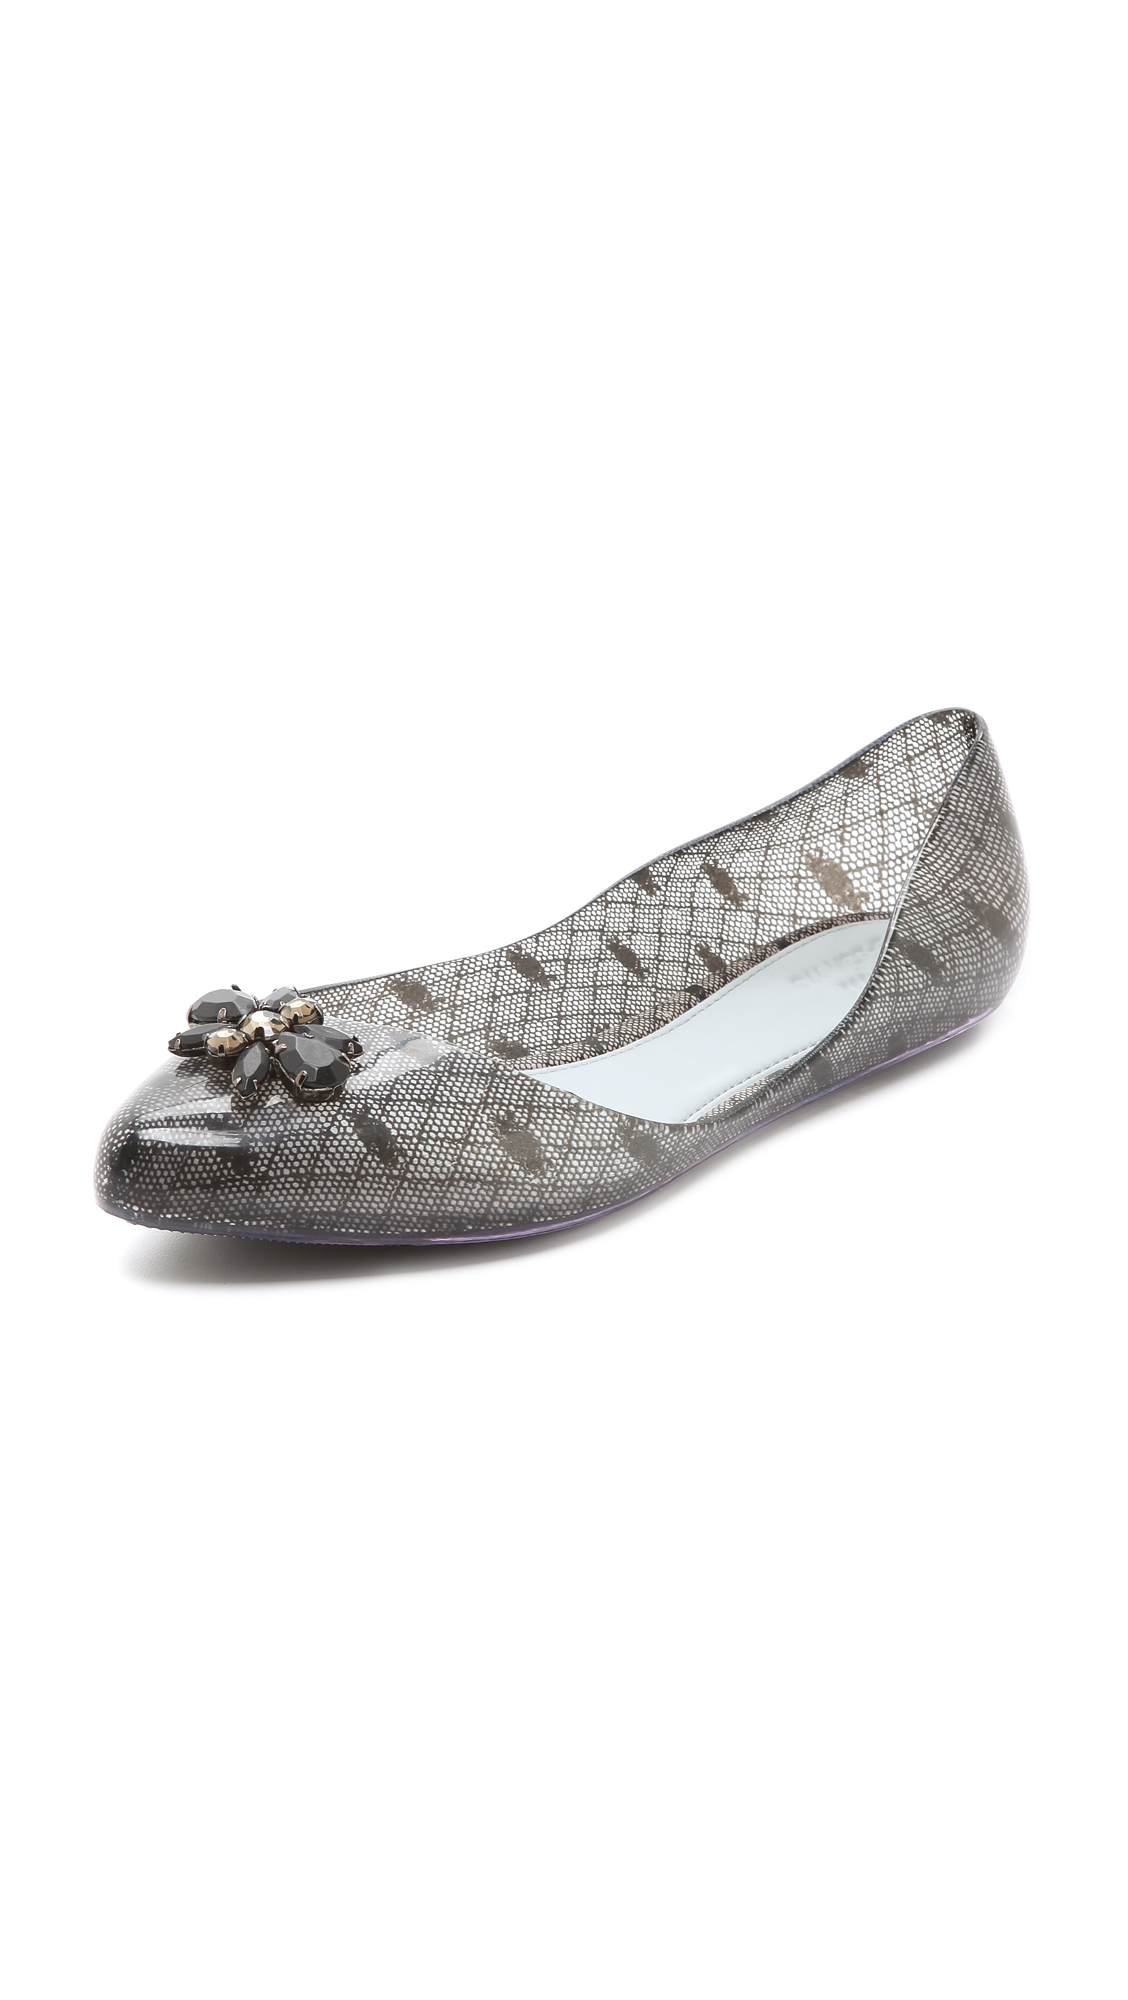 a8151f9c1dc Lyst - Melissa Trippy Jason Wu Lace Flats in Gray